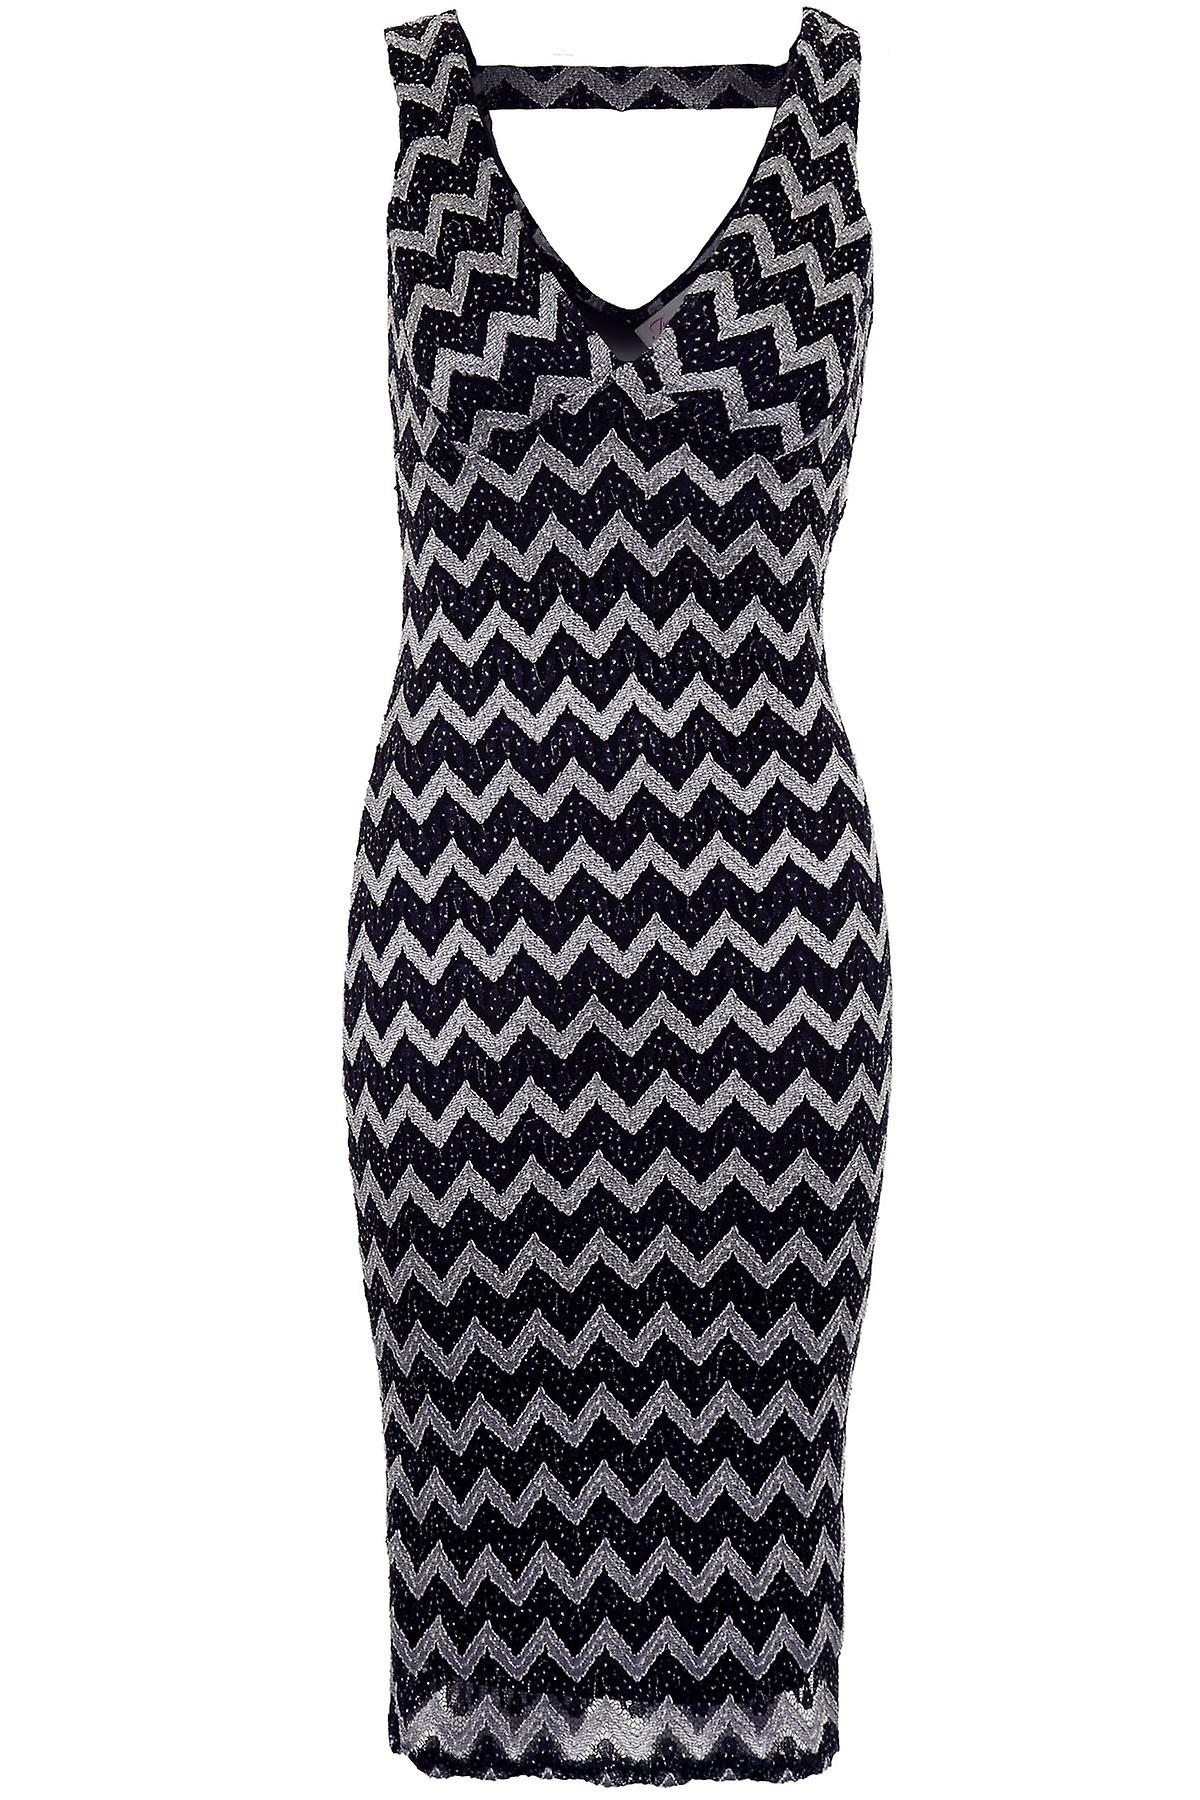 Ladies V Neck Back Lined Glittery Zig Zag Women's Bodycon Knee Midi Dress